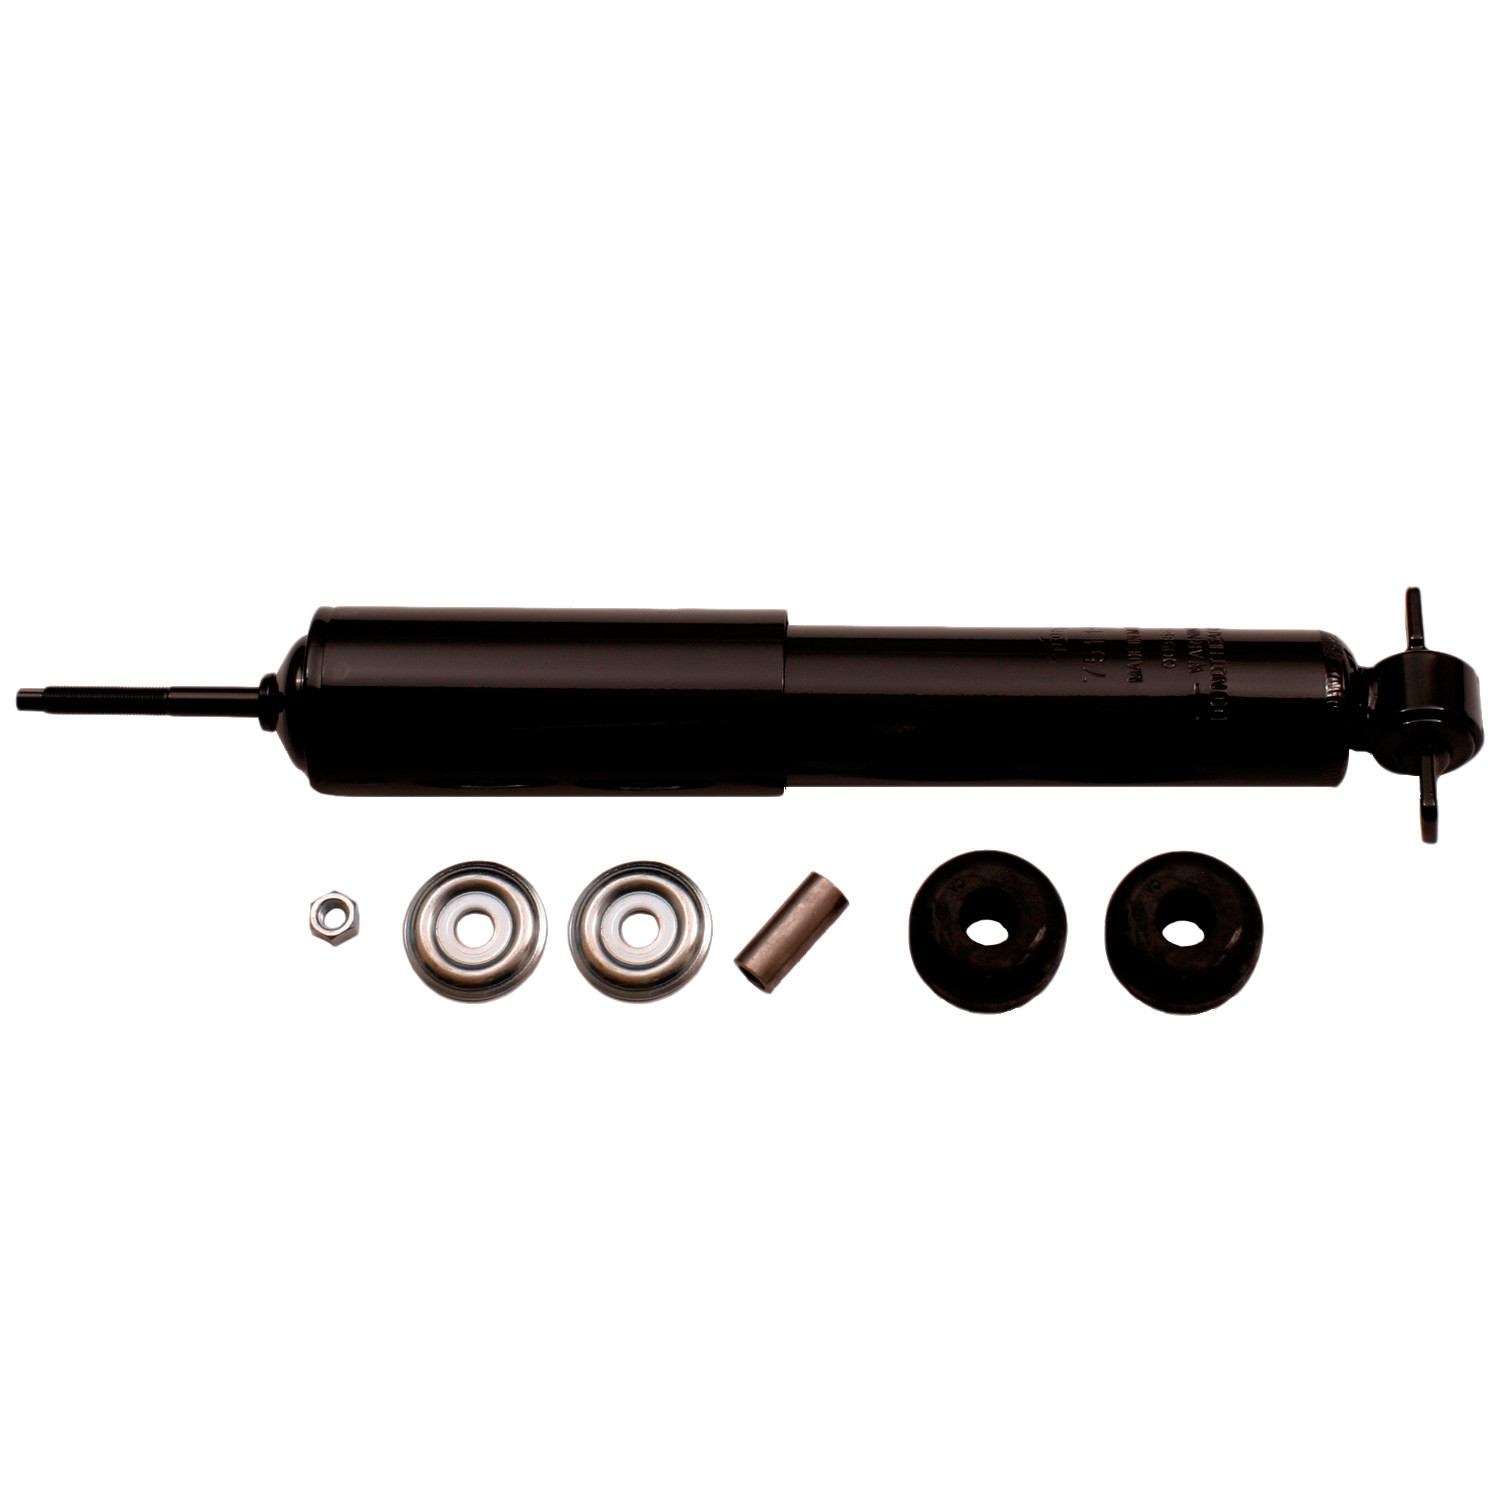 ACDELCO ADVANTAGE - Gas Charged Shock Absorber - DCD 520-408